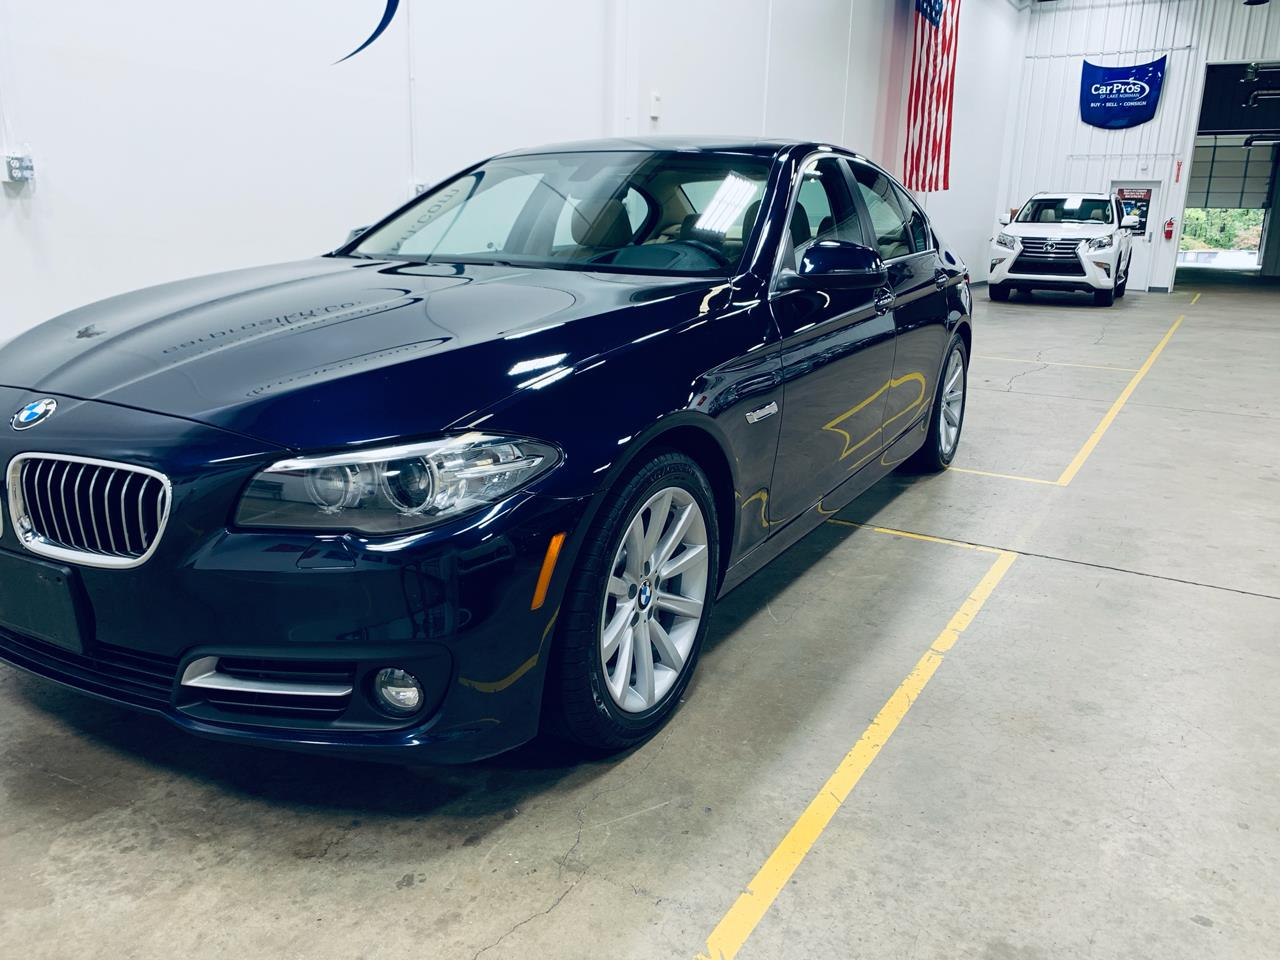 2015 BMW 5 Series (CC-1274373) for sale in Mooresville, North Carolina